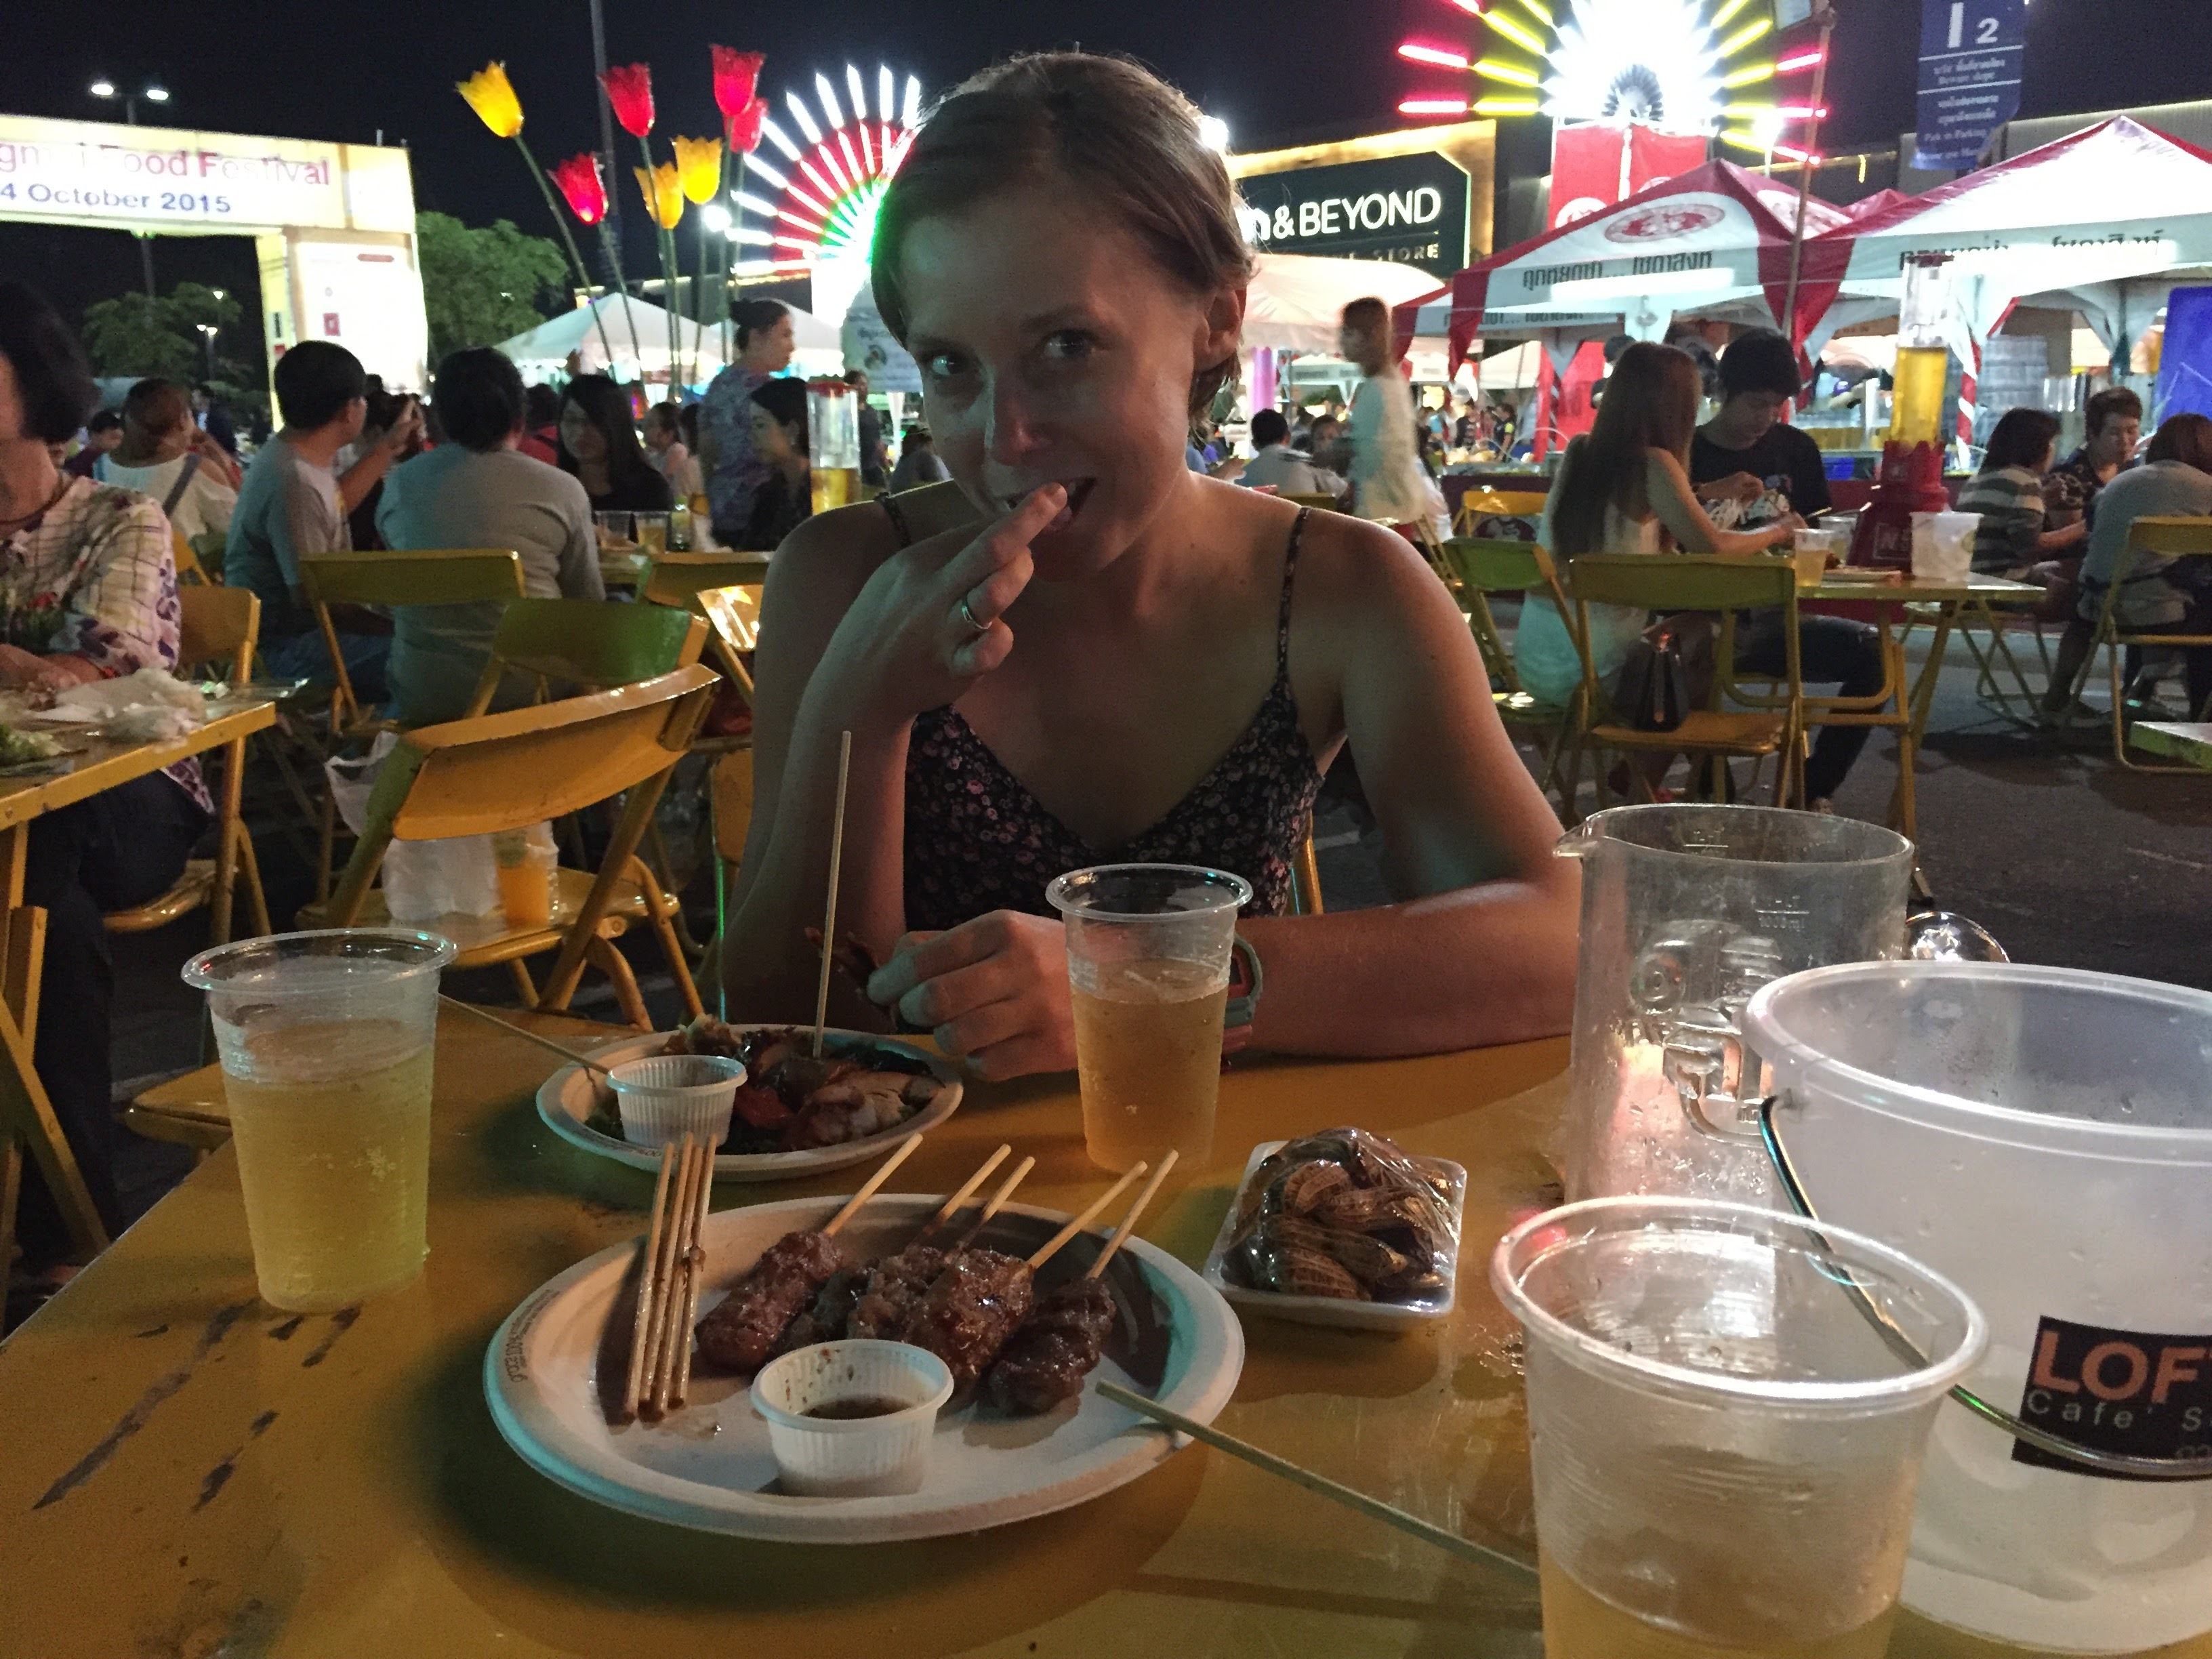 Travel healthy - a girl eating at a local restaurant in Thailand.